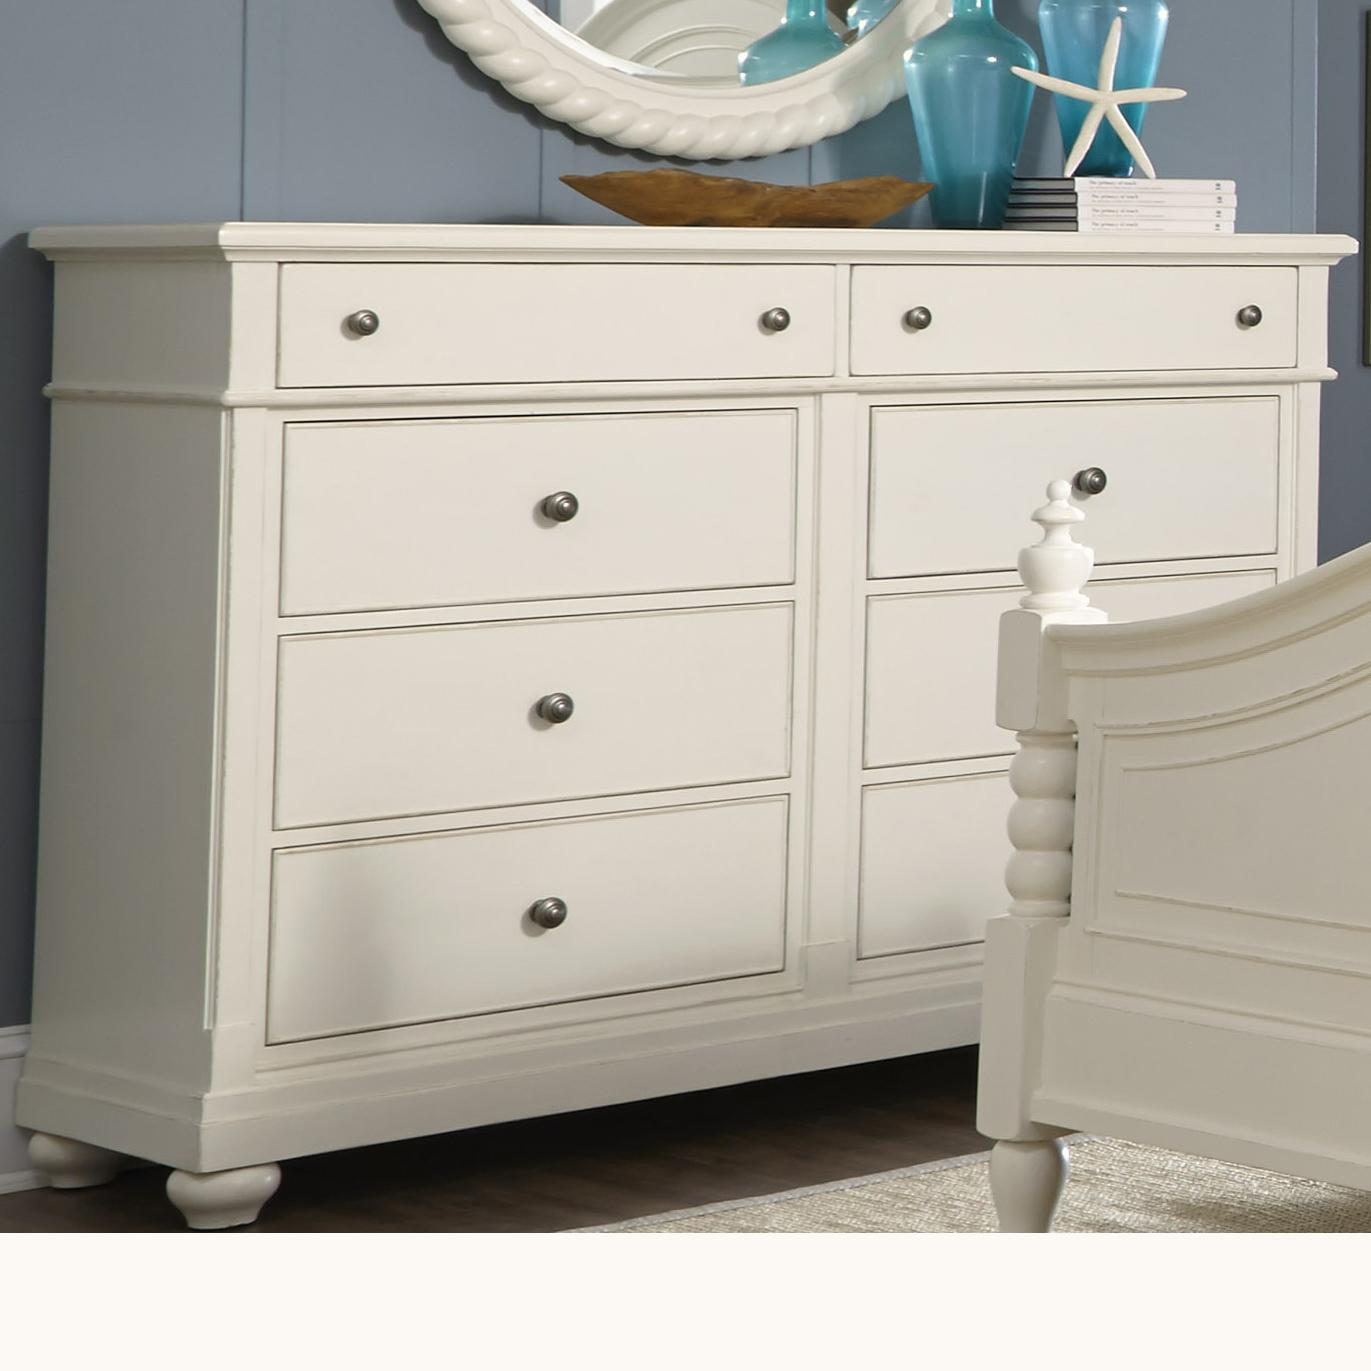 Liberty Furniture Harbor View Dresser with 8 Drawers - Item Number: 631-BR32